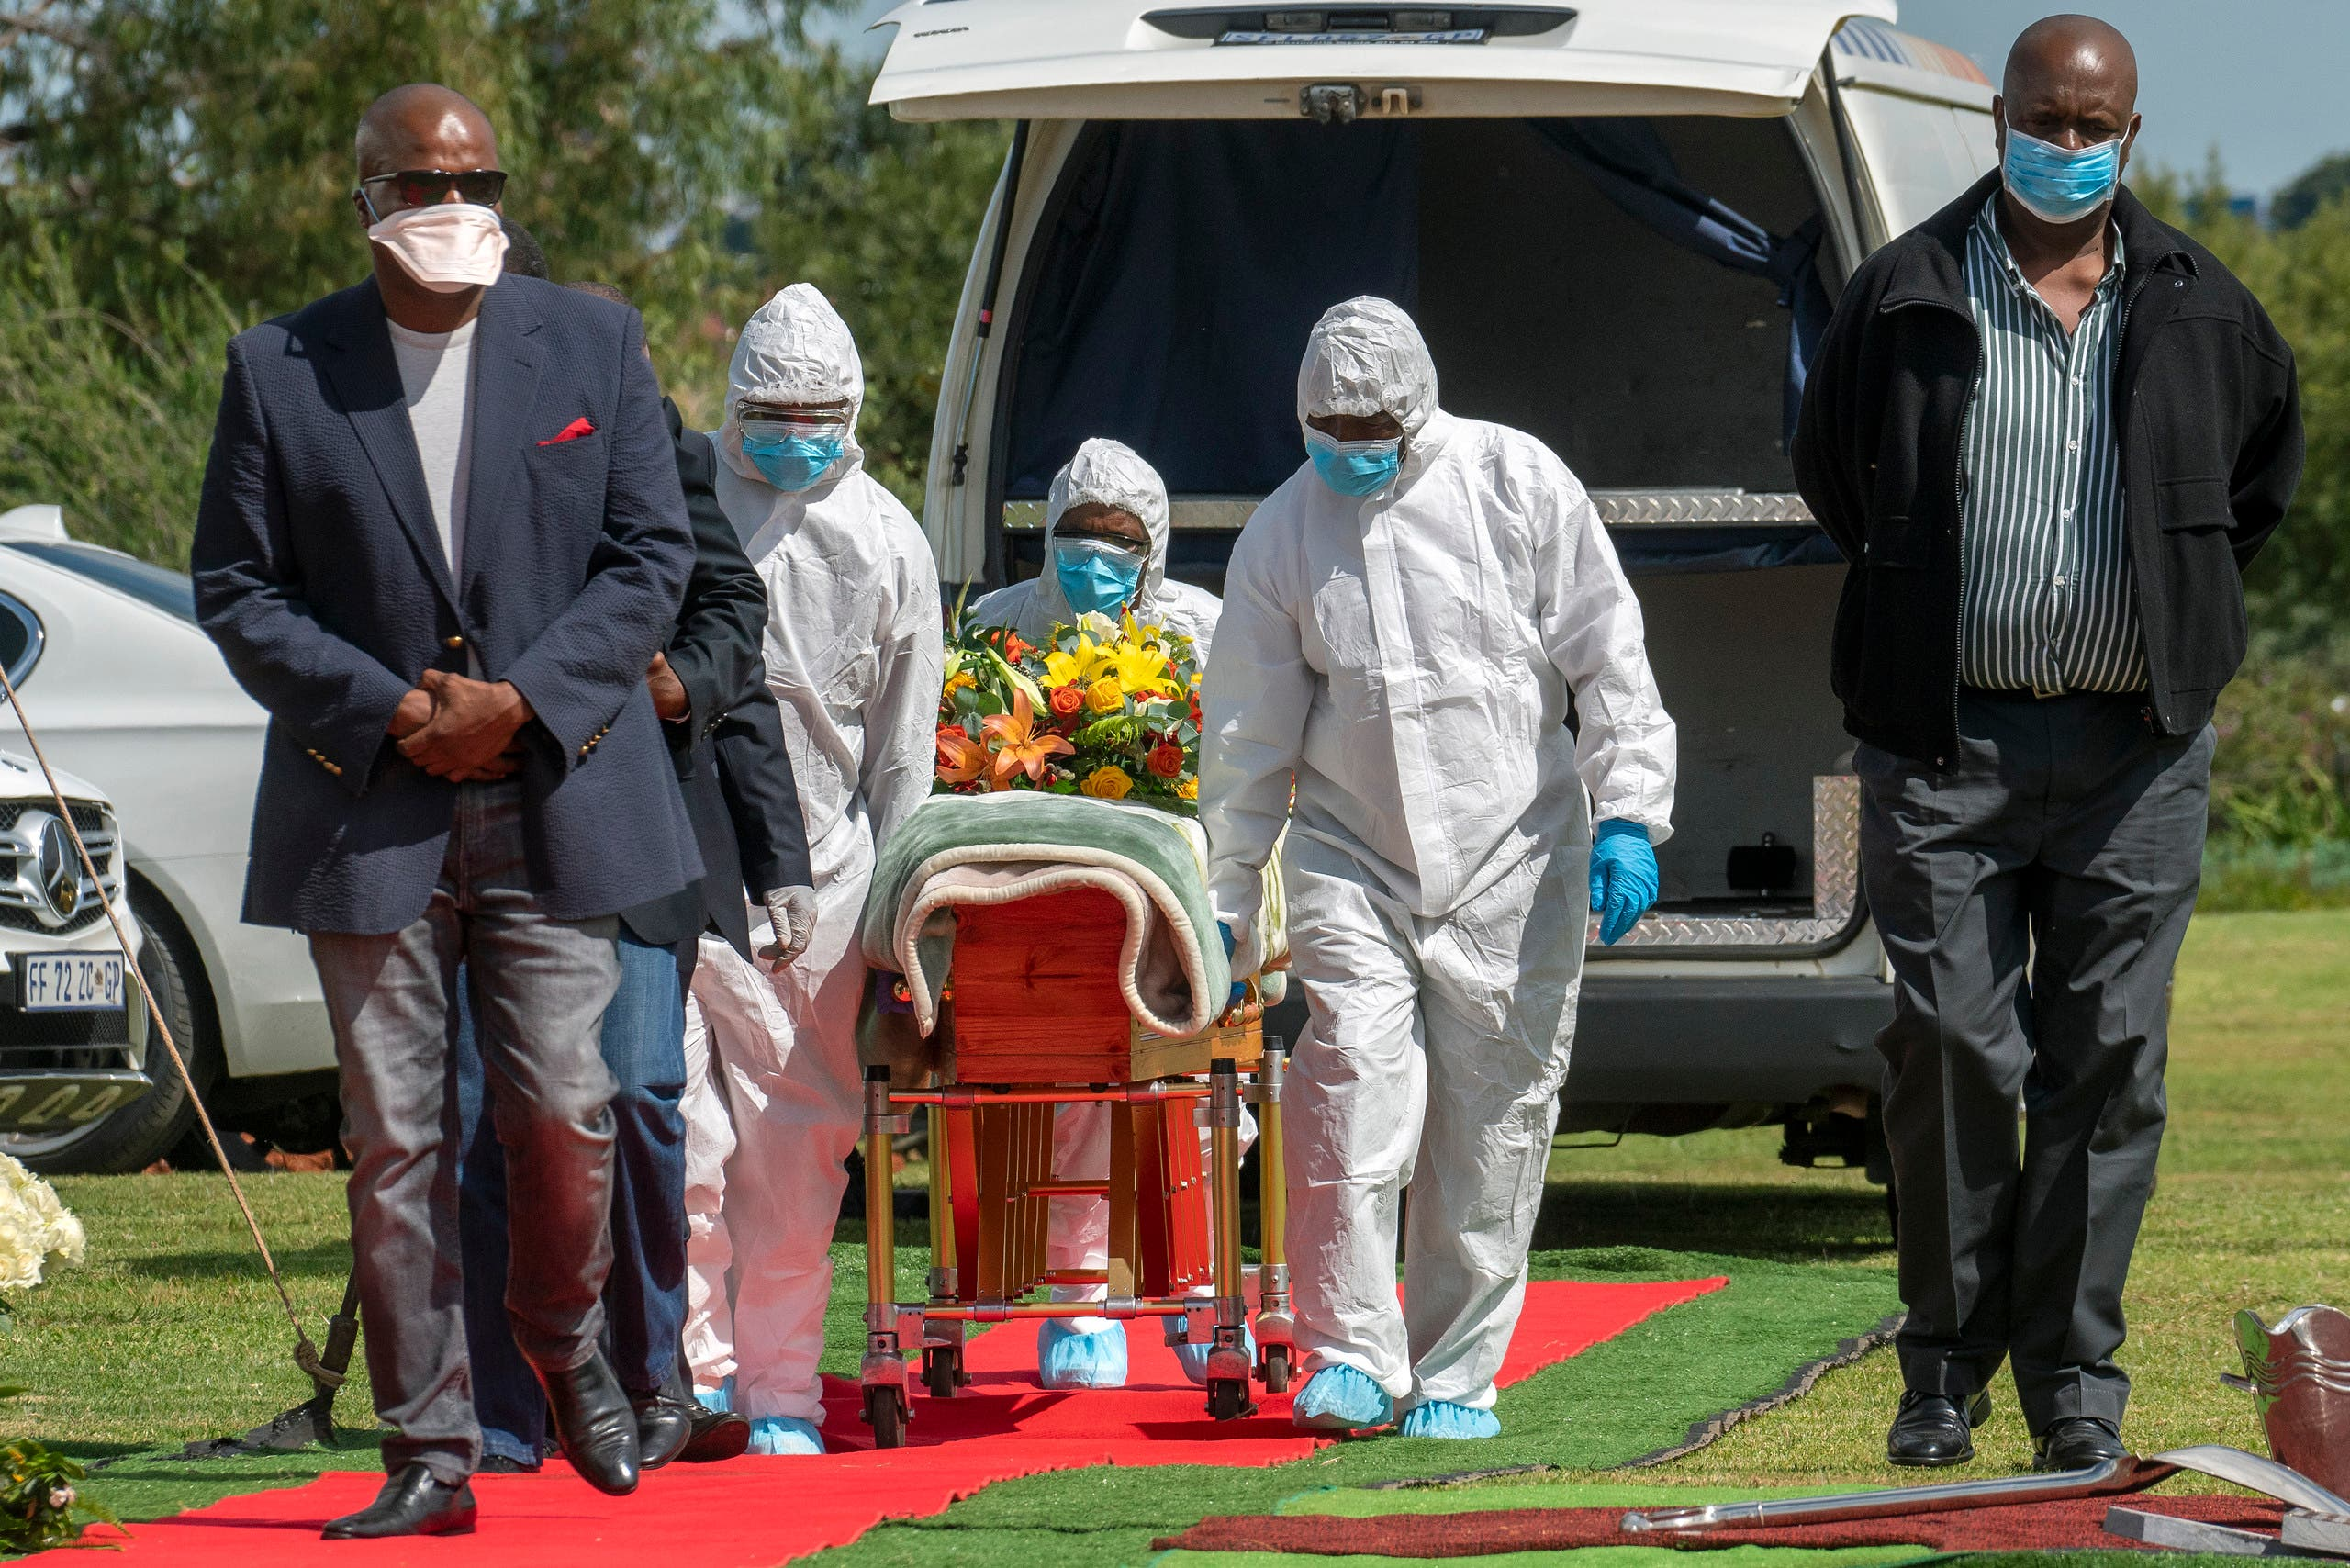 Pallbearers wearing personal protective equipment suits lift the casket containing the remains of a victim of COVID-19 outside Johannesburg, South Africa, on April 16, 2020. (AP)